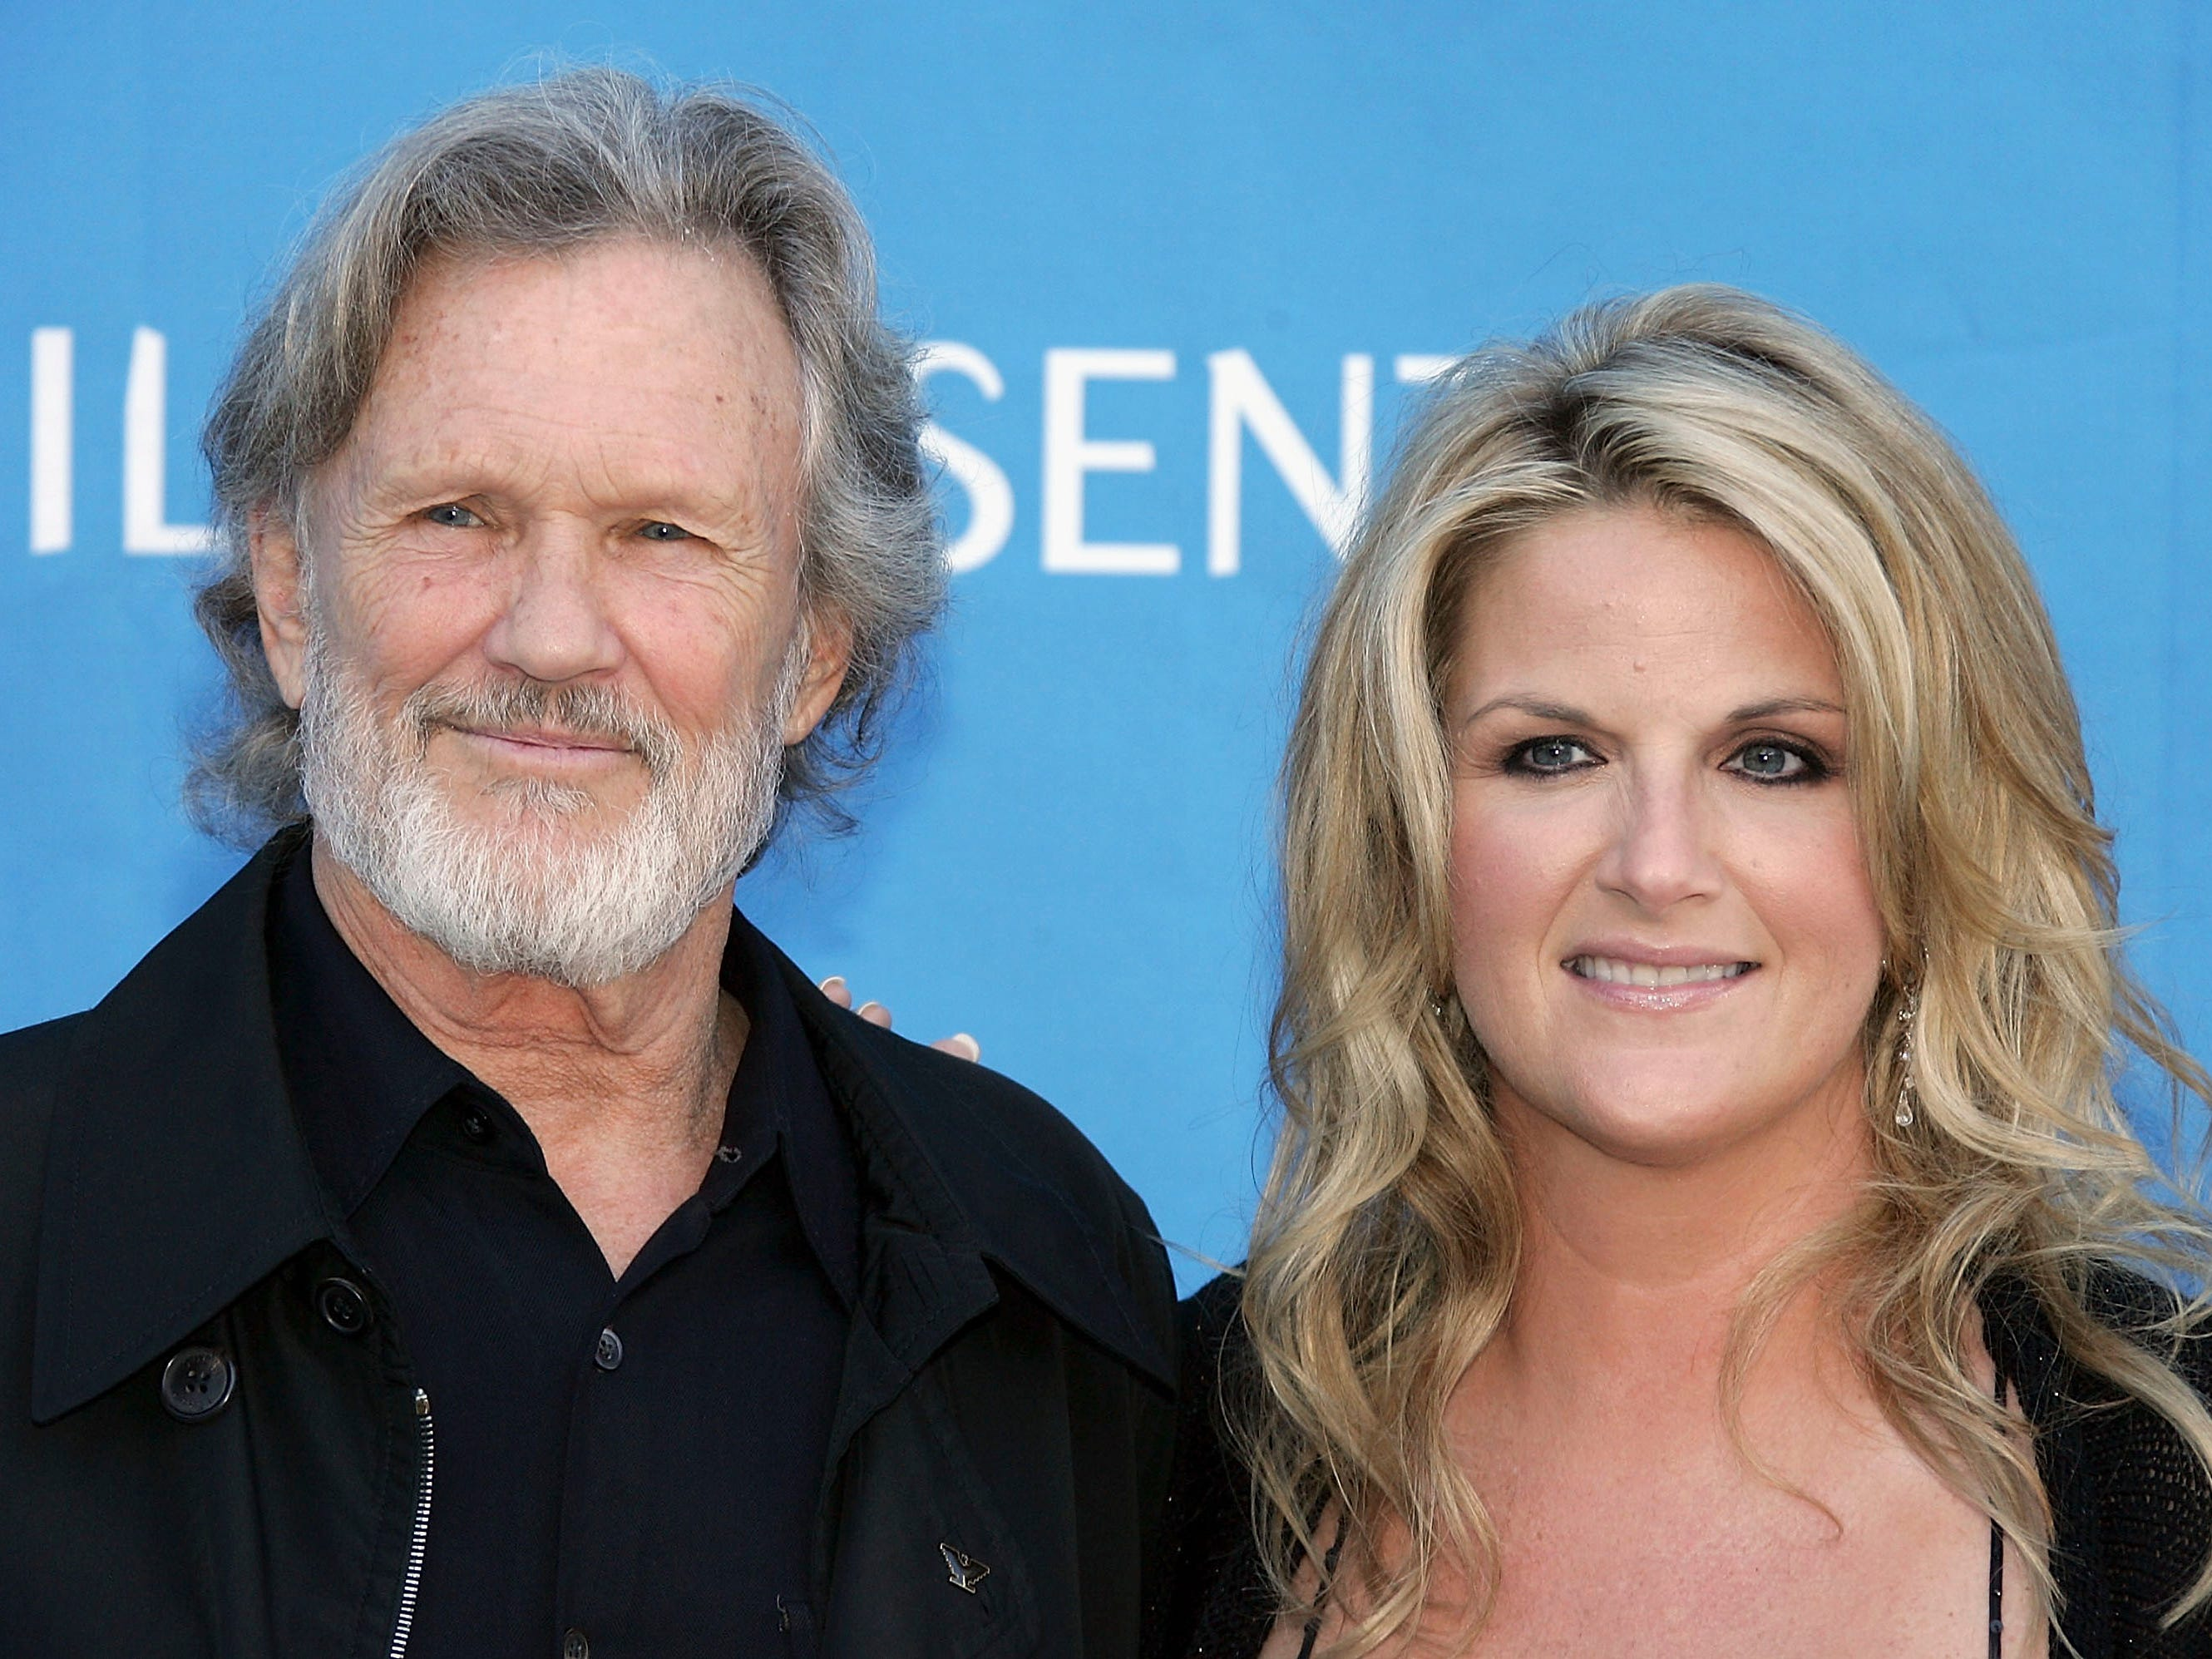 Kris Kristofferson poses with Trisha Yearwood, singer at the Hollywood Bowl for the Sixth Annual Hollywood Bowl Hall of Fame Induction Ceremony, on June 24, 2005, in Los Angeles, California.